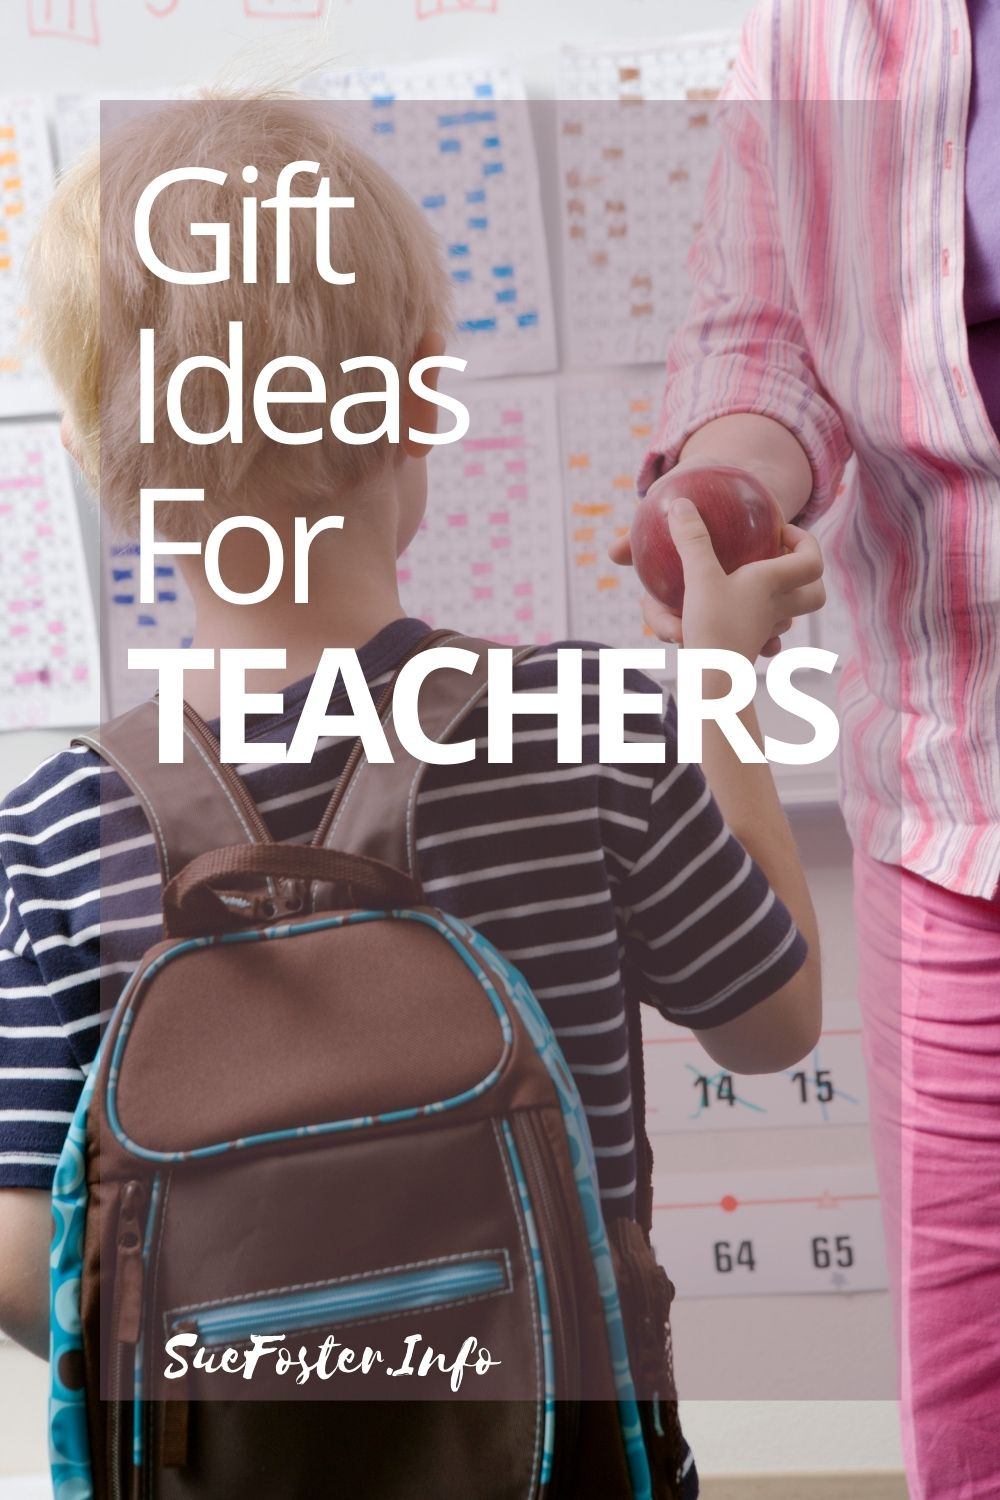 Gift ideas for teachers at the end of term.